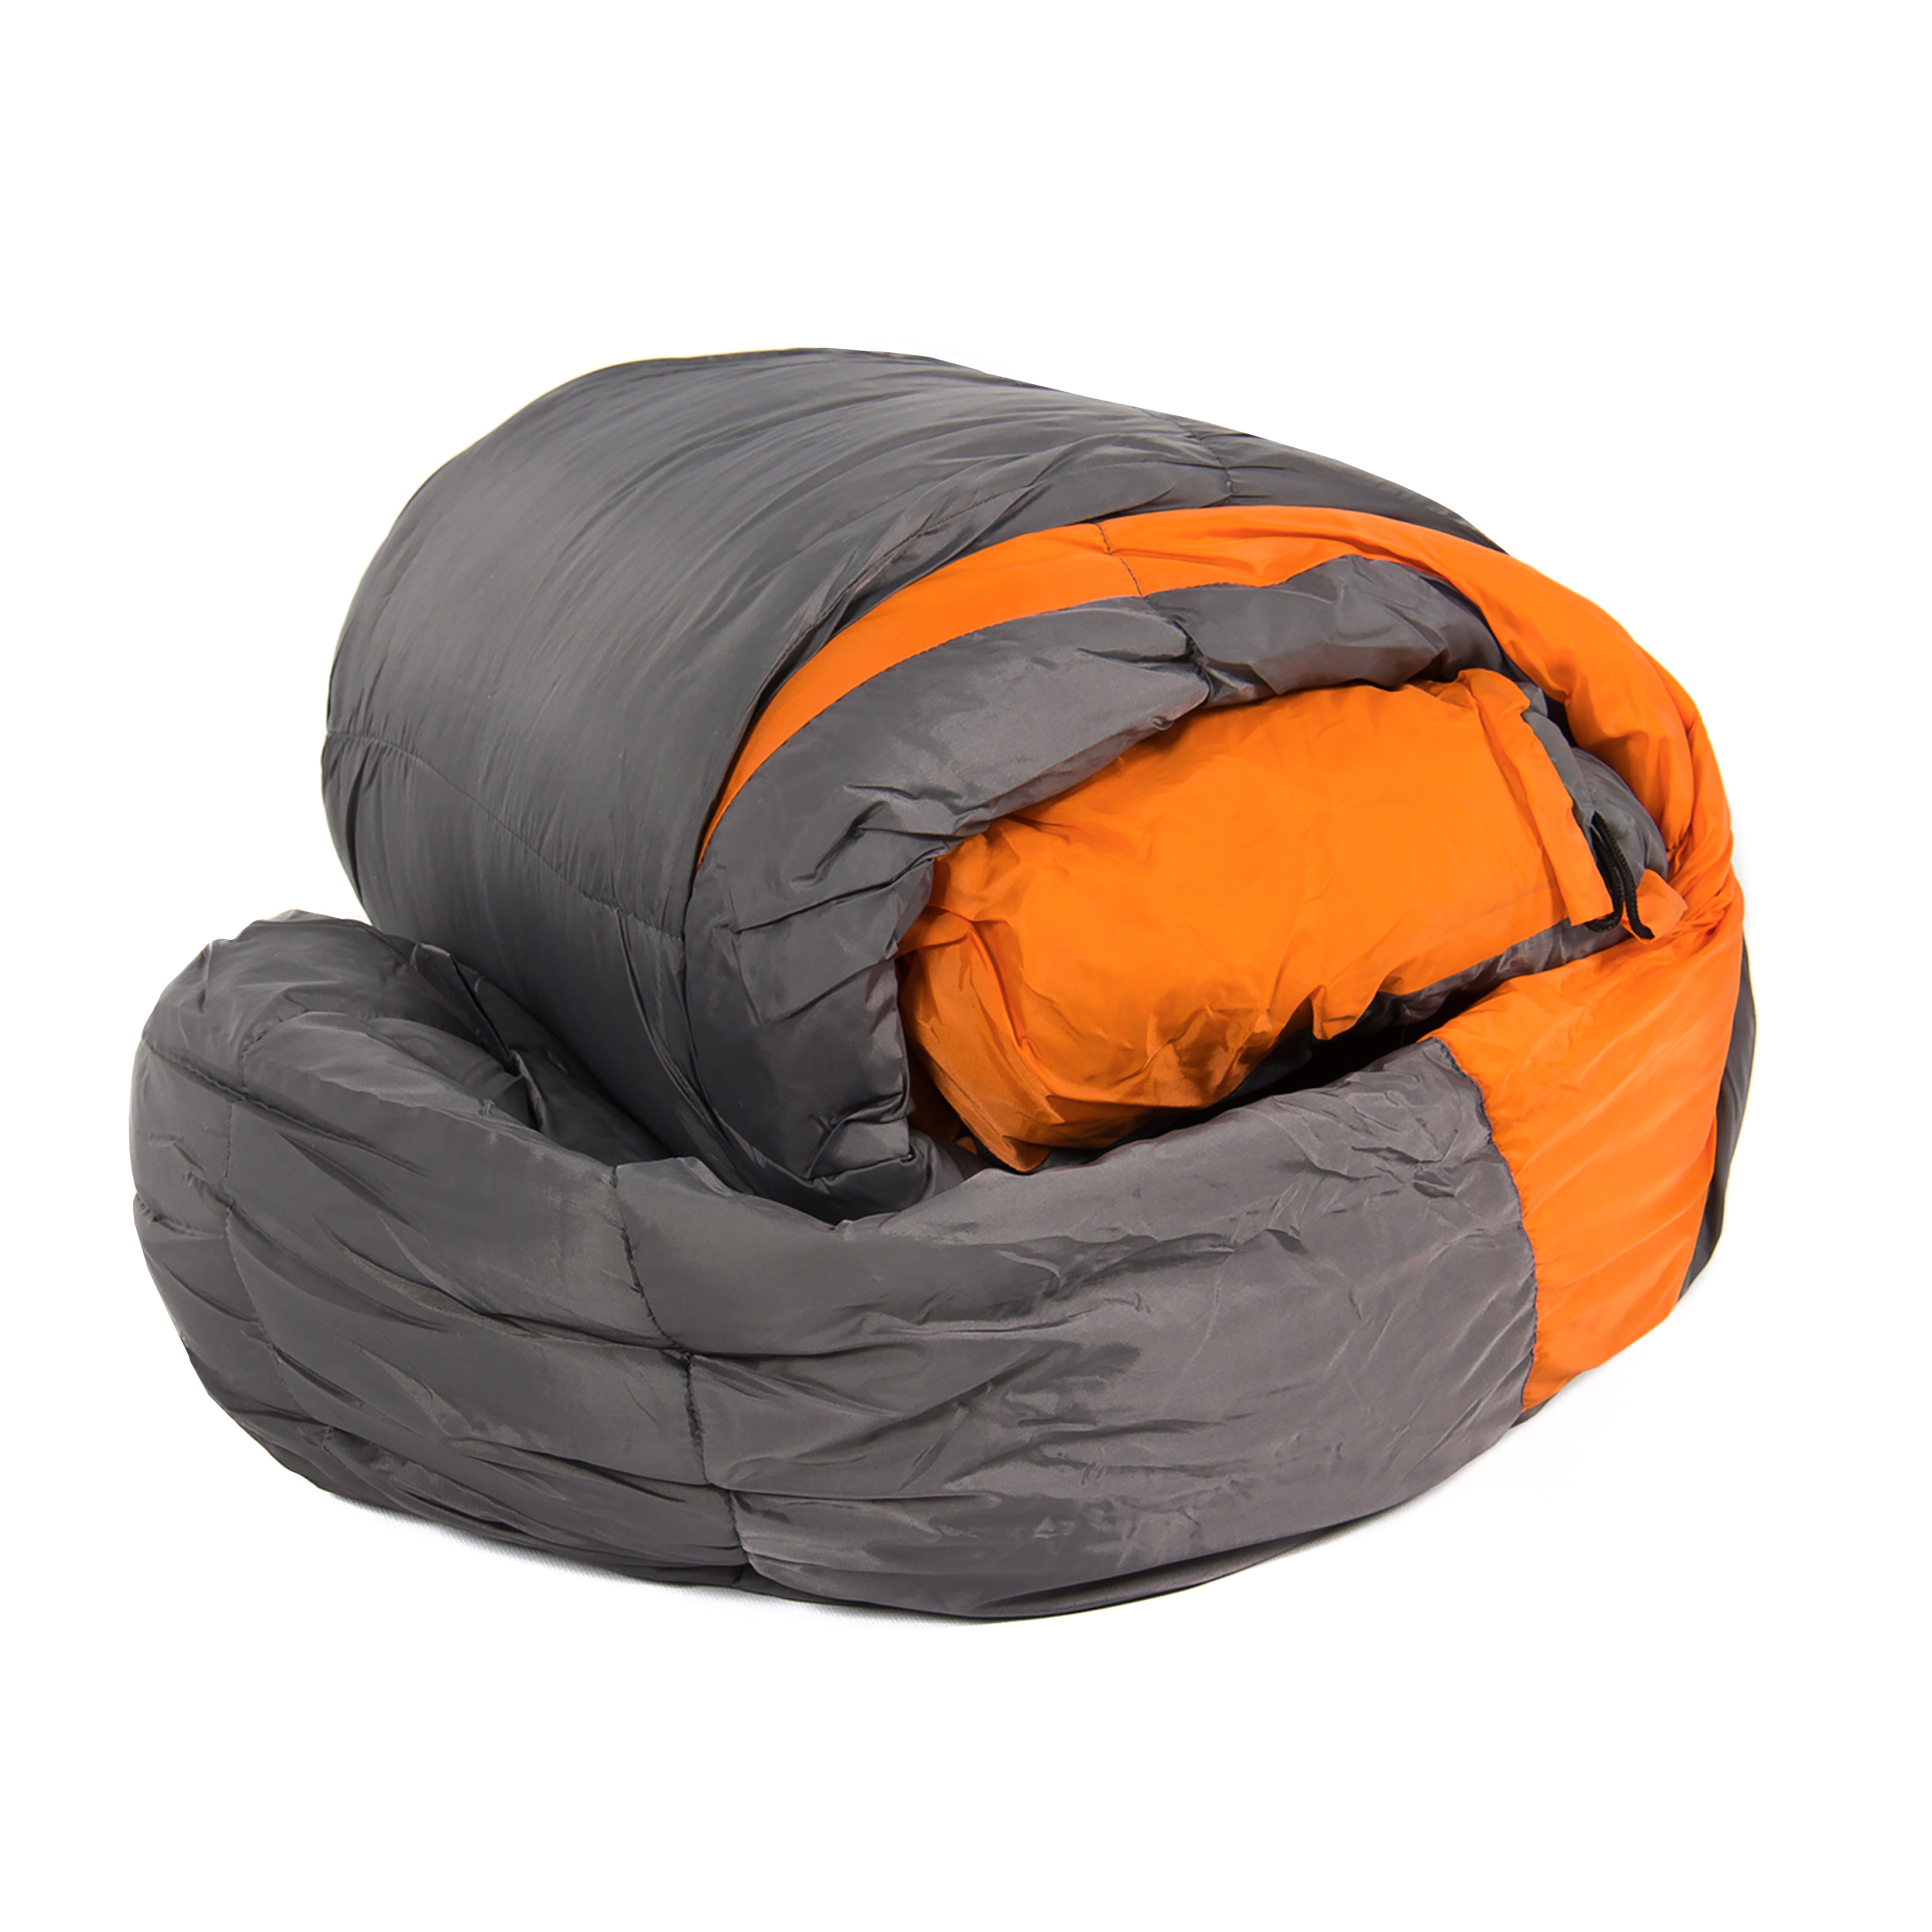 Target Sleeping Bags Mummy Sleeping Bag 5f 15c Camping Hiking With Carrying